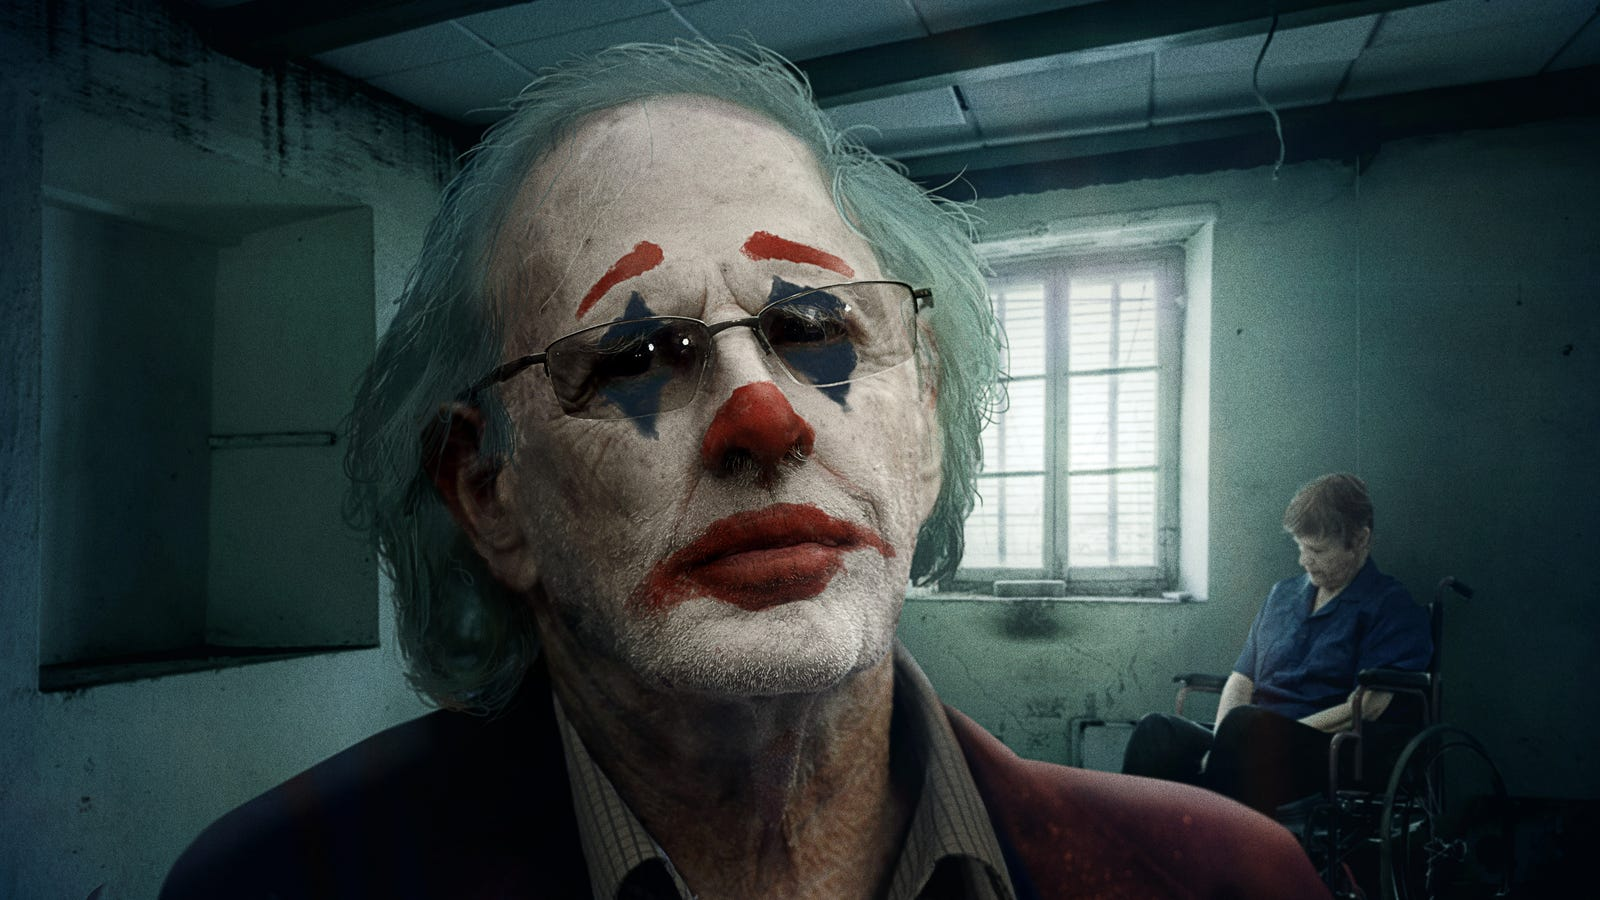 New Even Bleaker 'Joker' Reboot Features Elderly Comic Book Villain Struggling To Care For Wife After Stroke